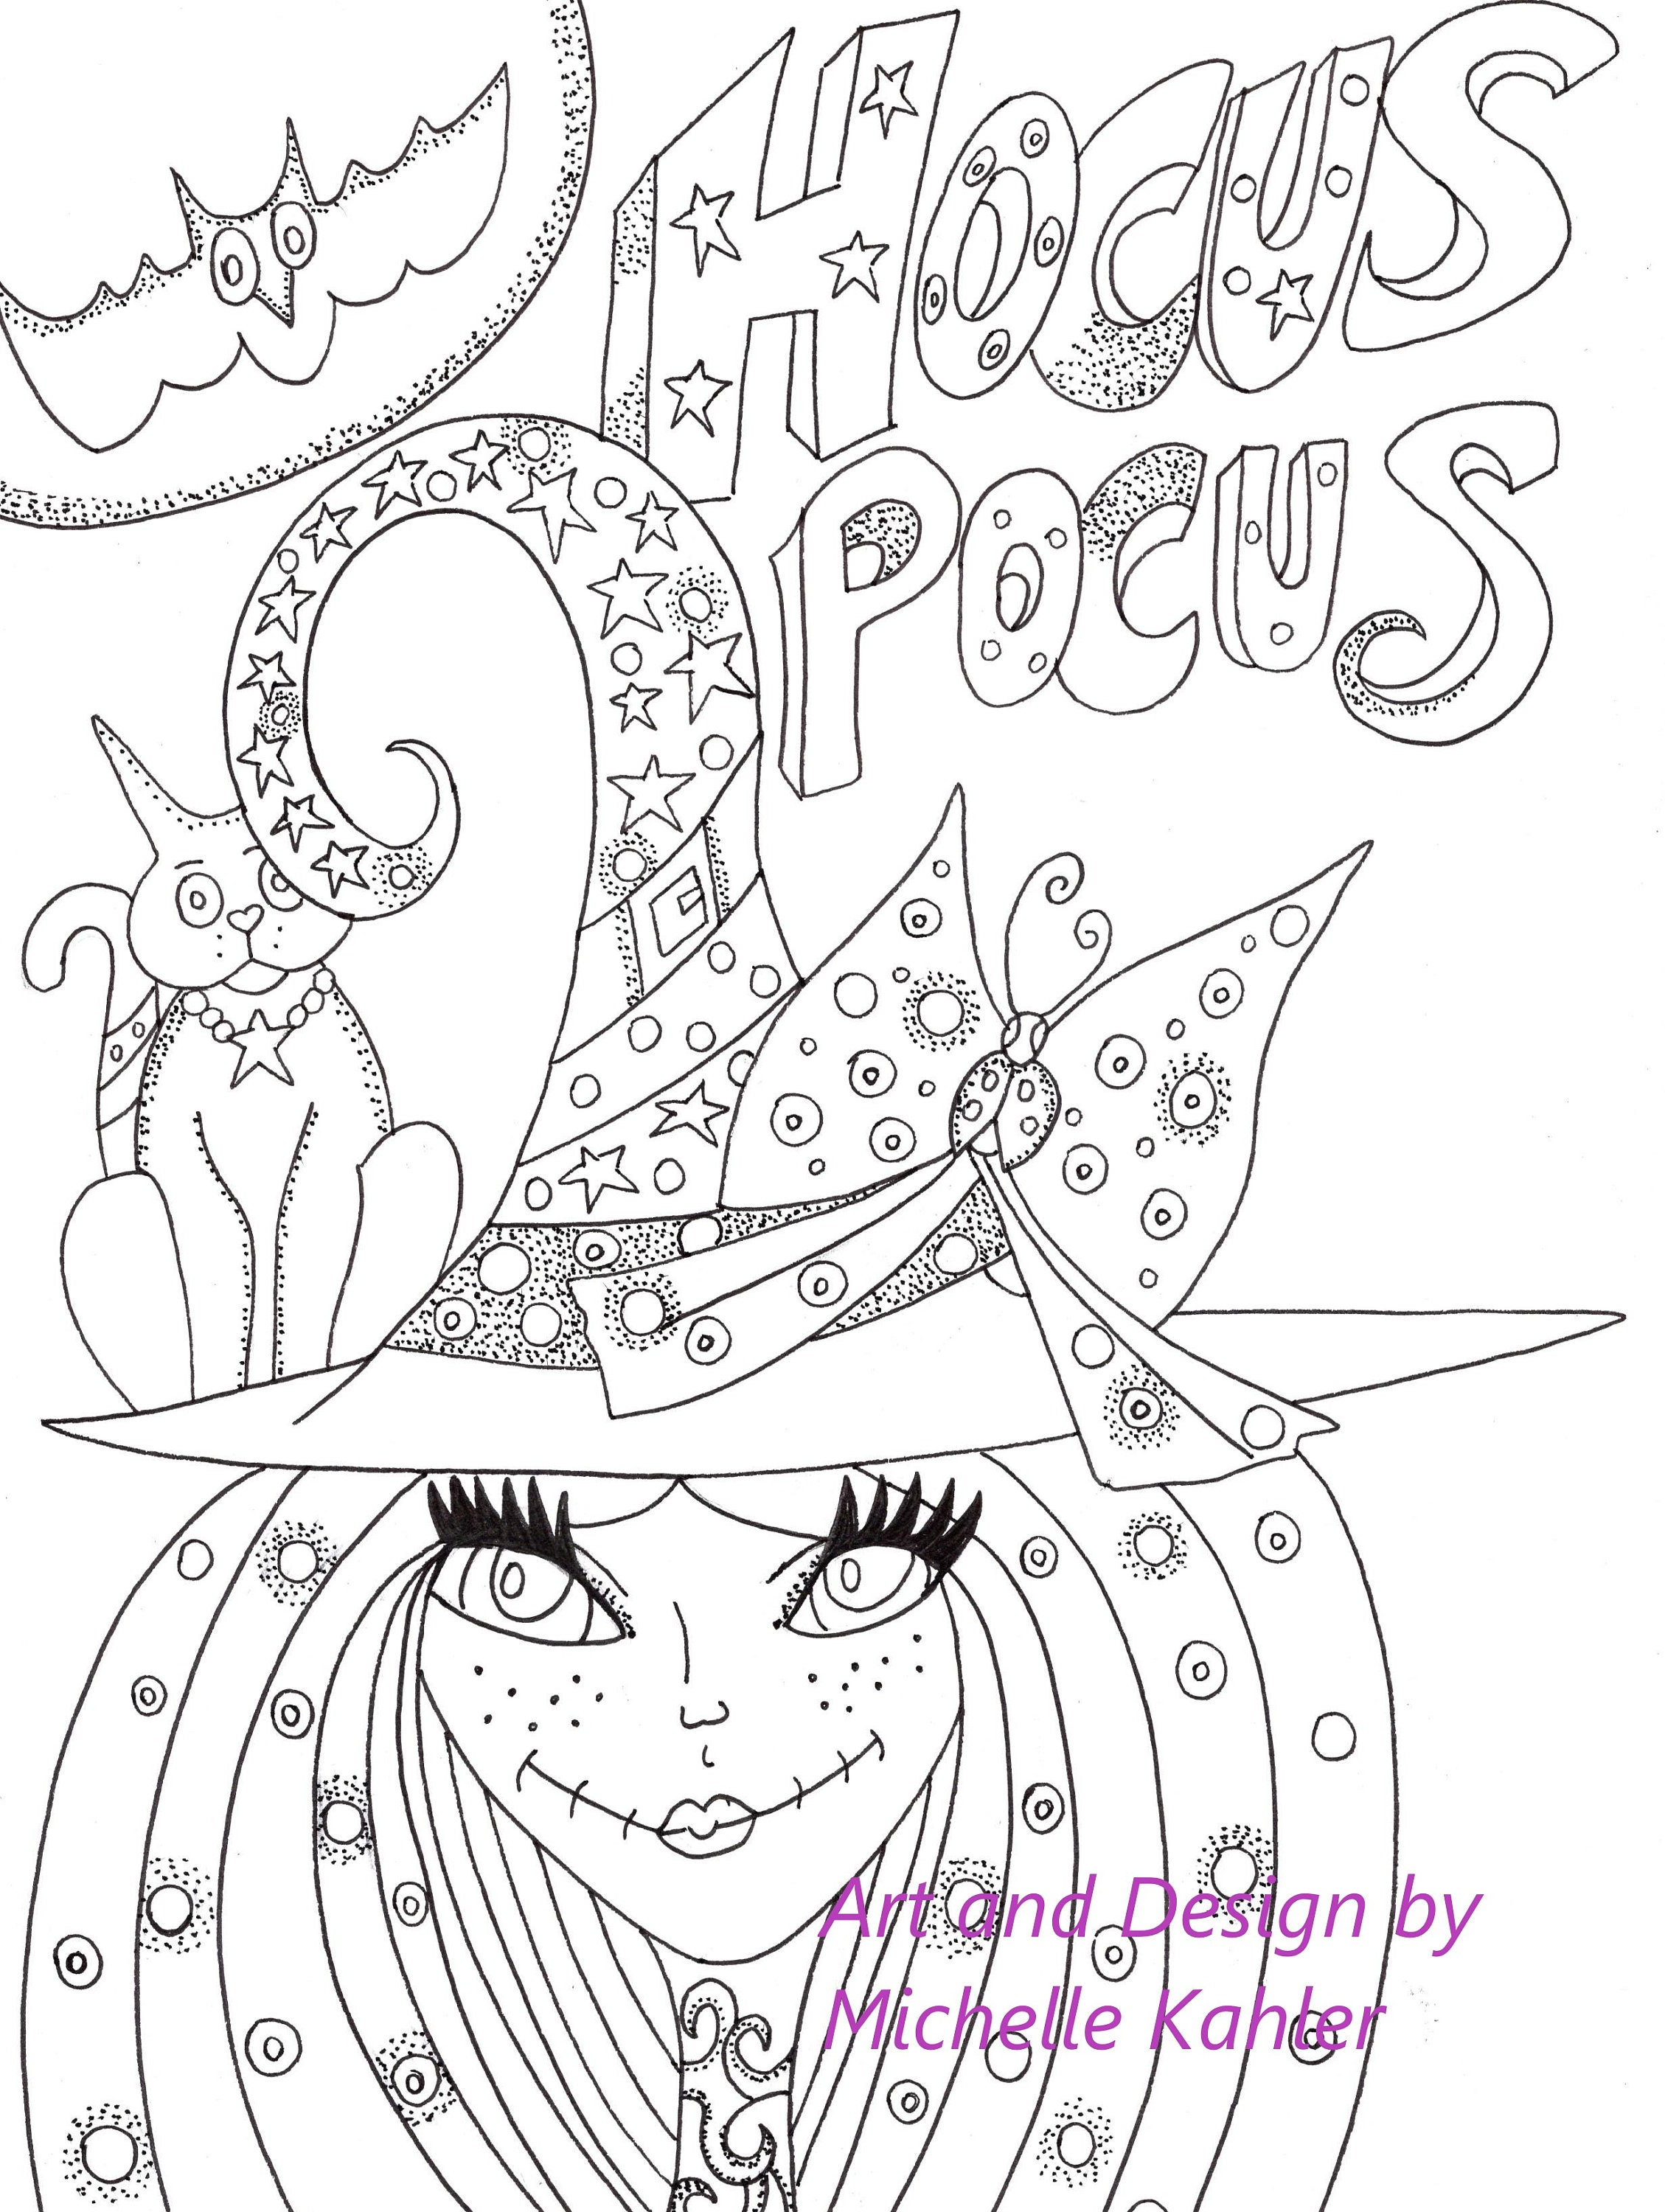 2 Printable Coloring pages of Hocus Pocus Witch and The Owl | Etsy